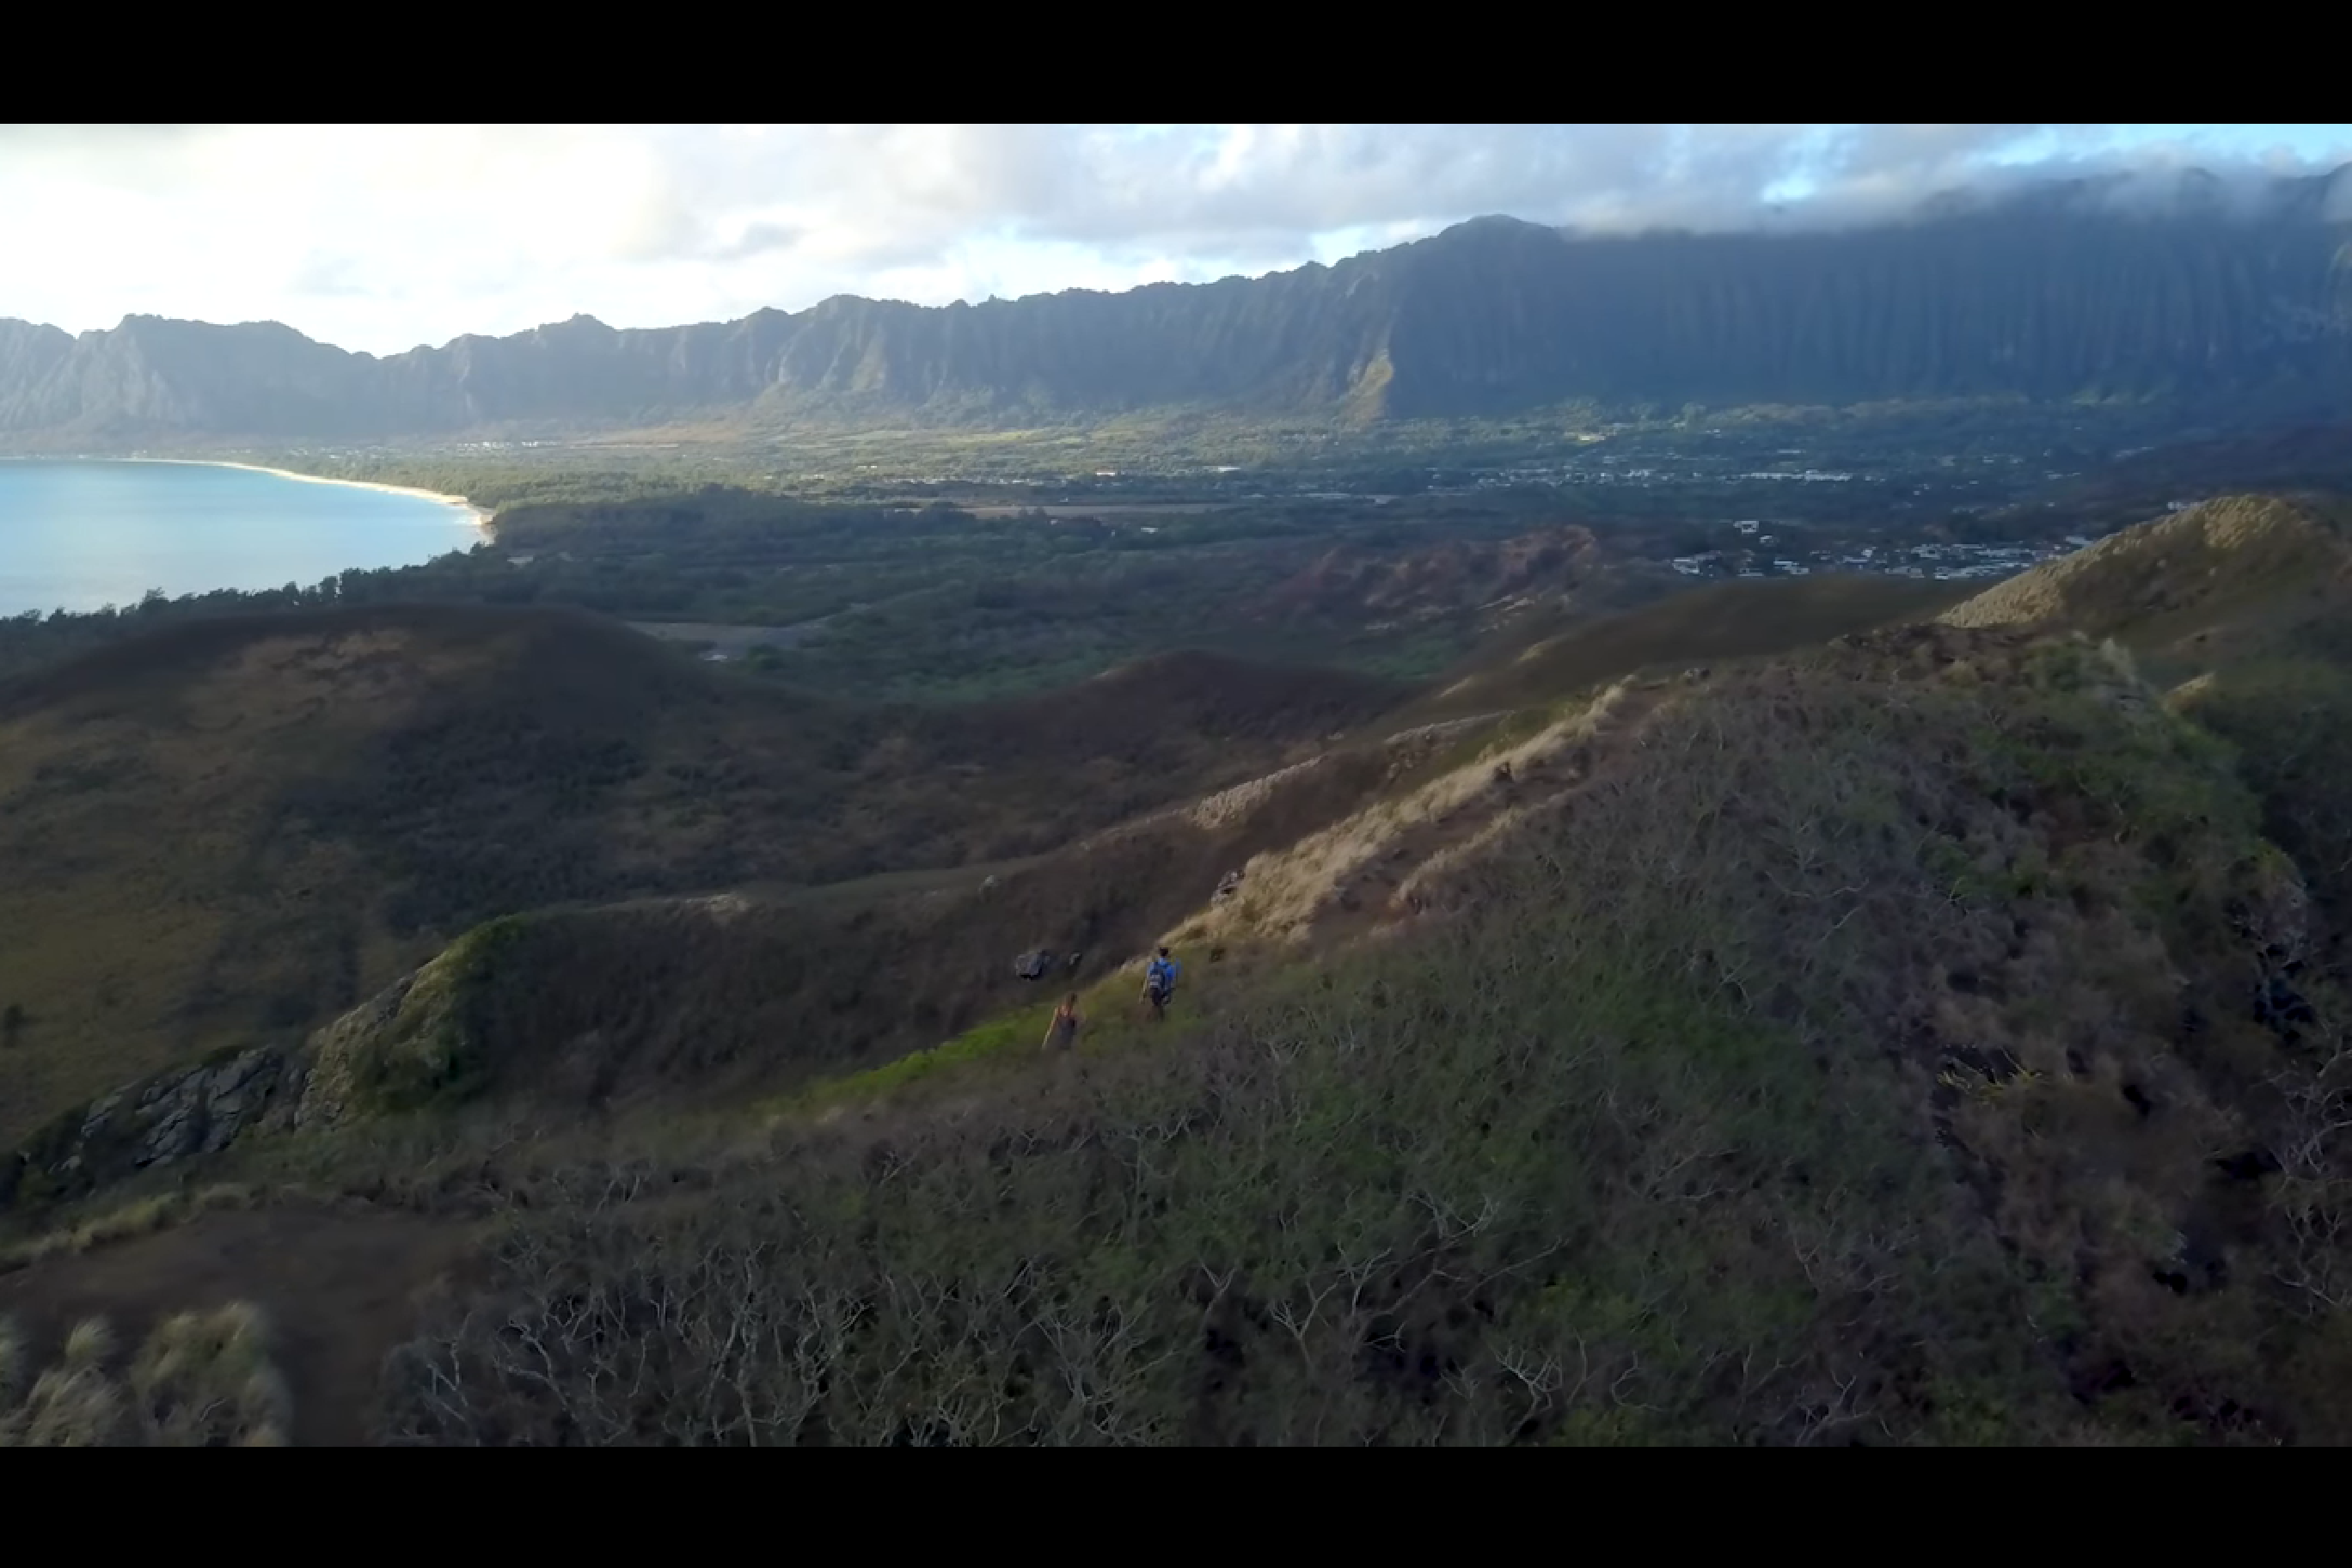 http://www.nyspeed.com/pictures/hawaii.png